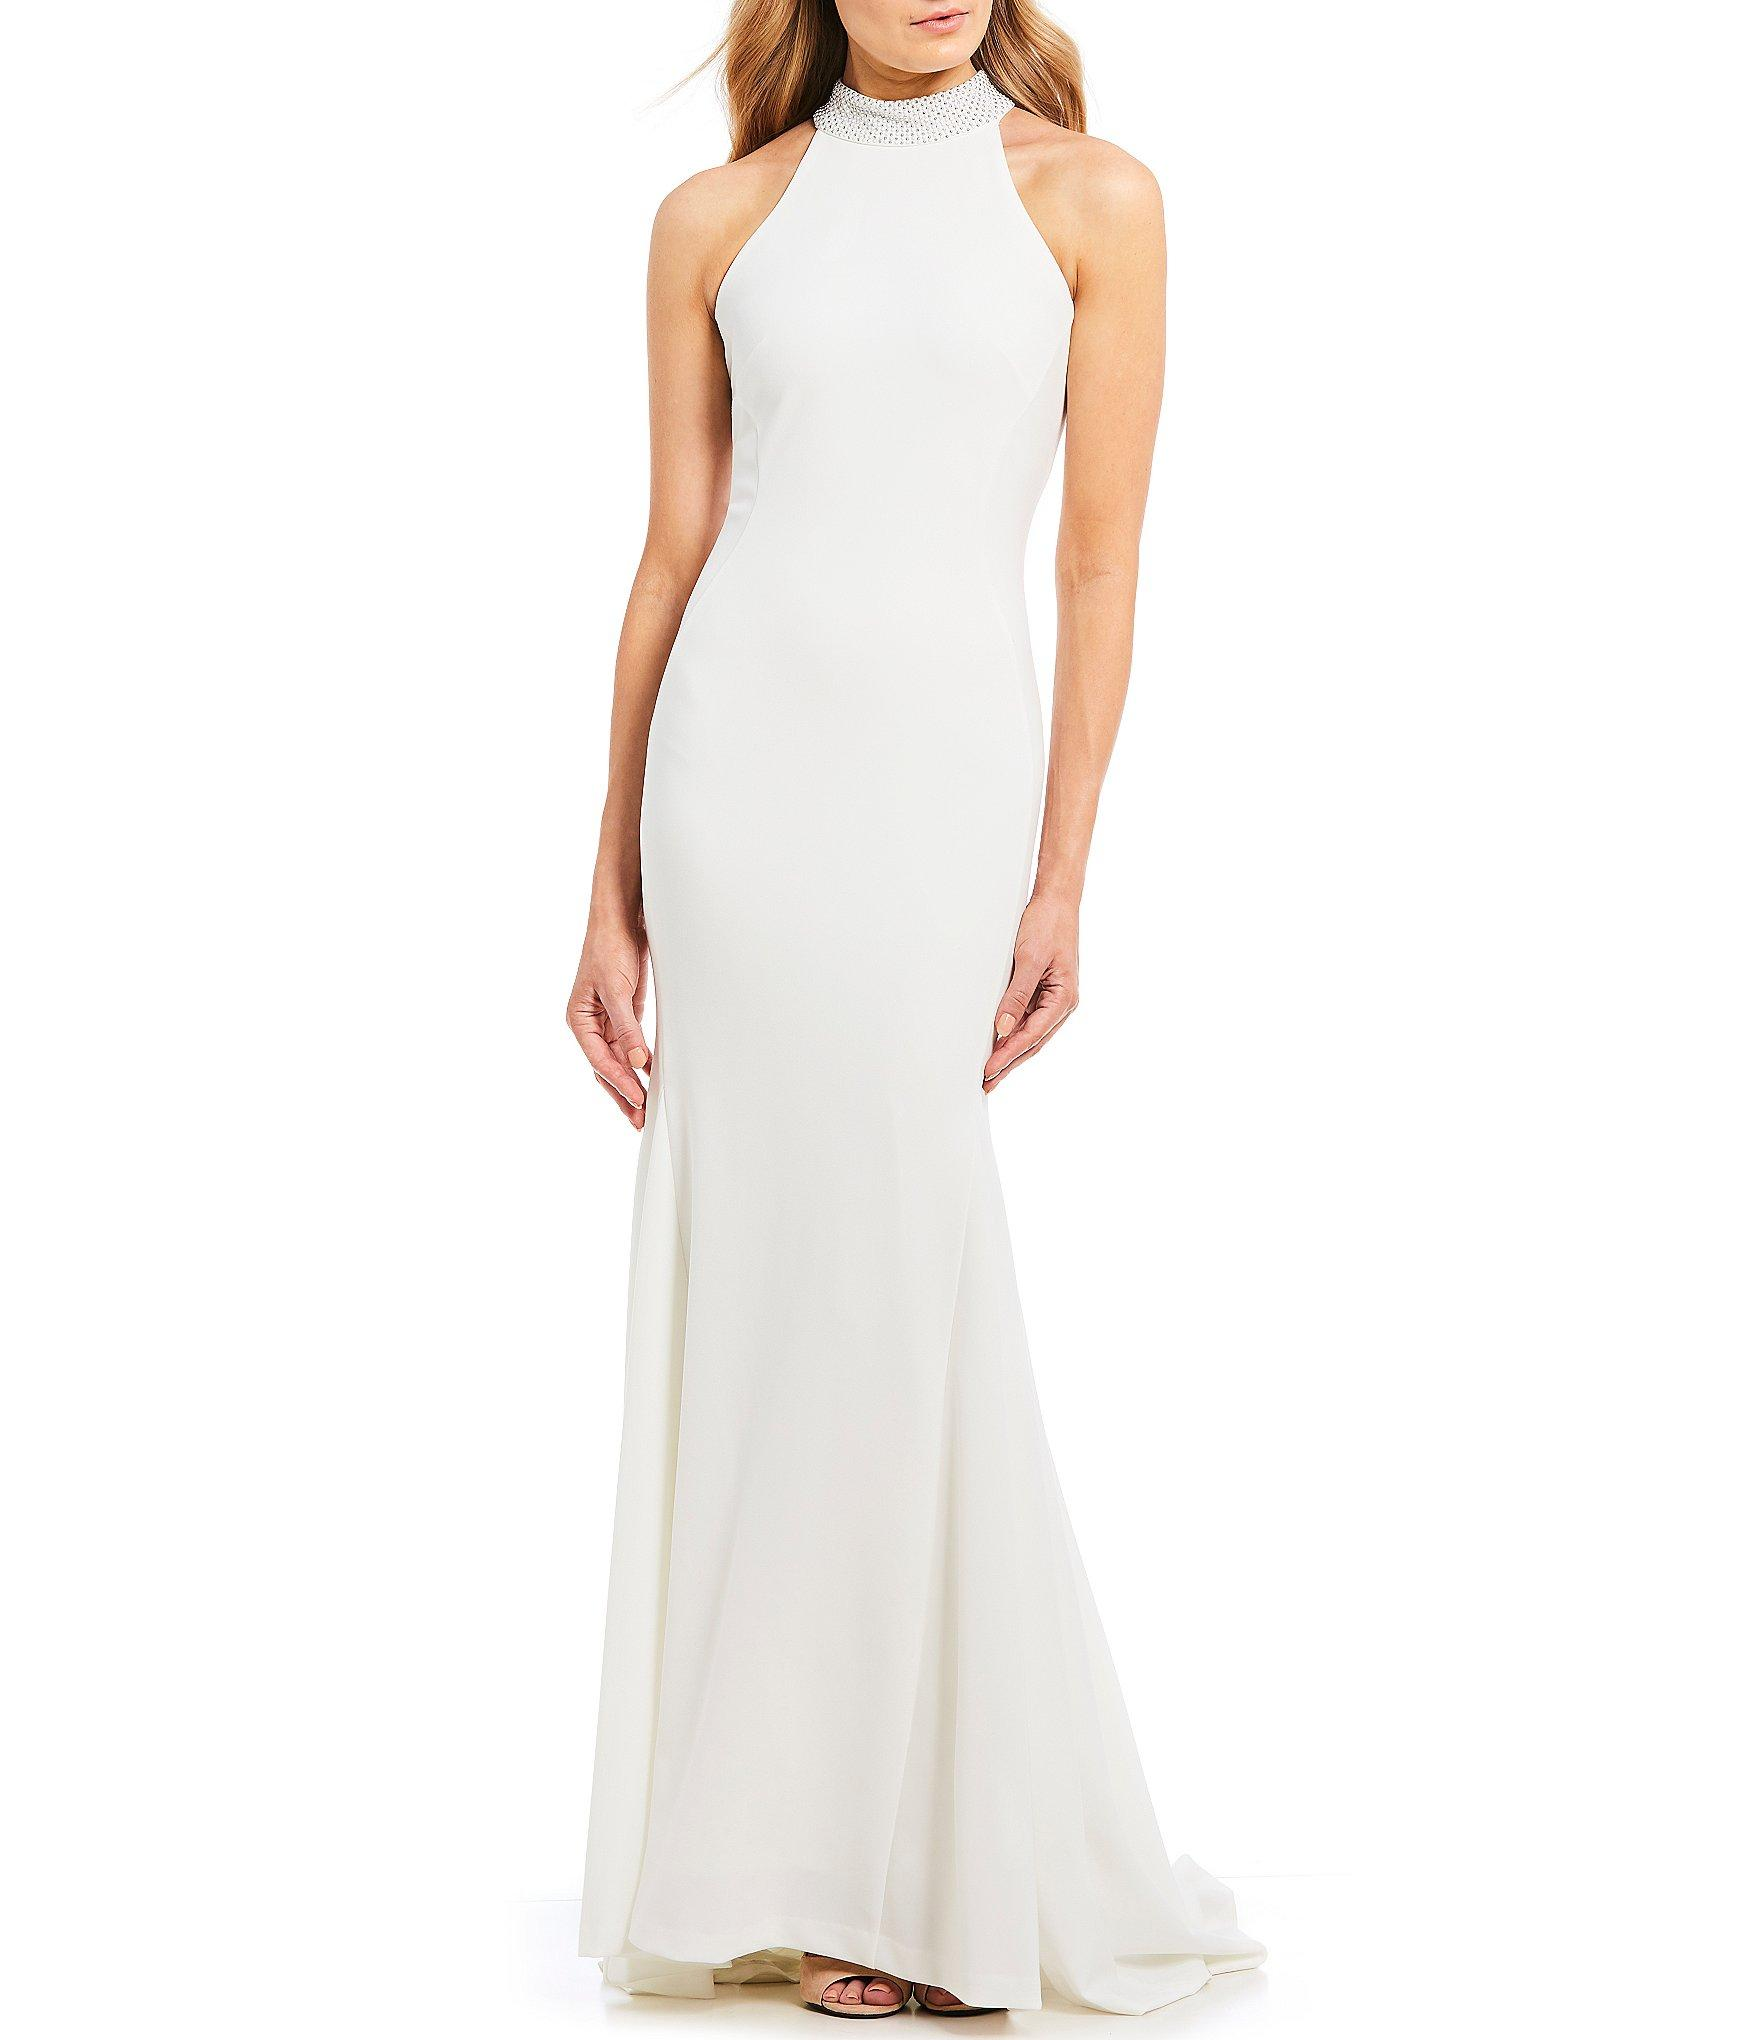 5e17ae860a6 Calvin Klein Embellished Mock Neck Mermaid Gown in White - Lyst